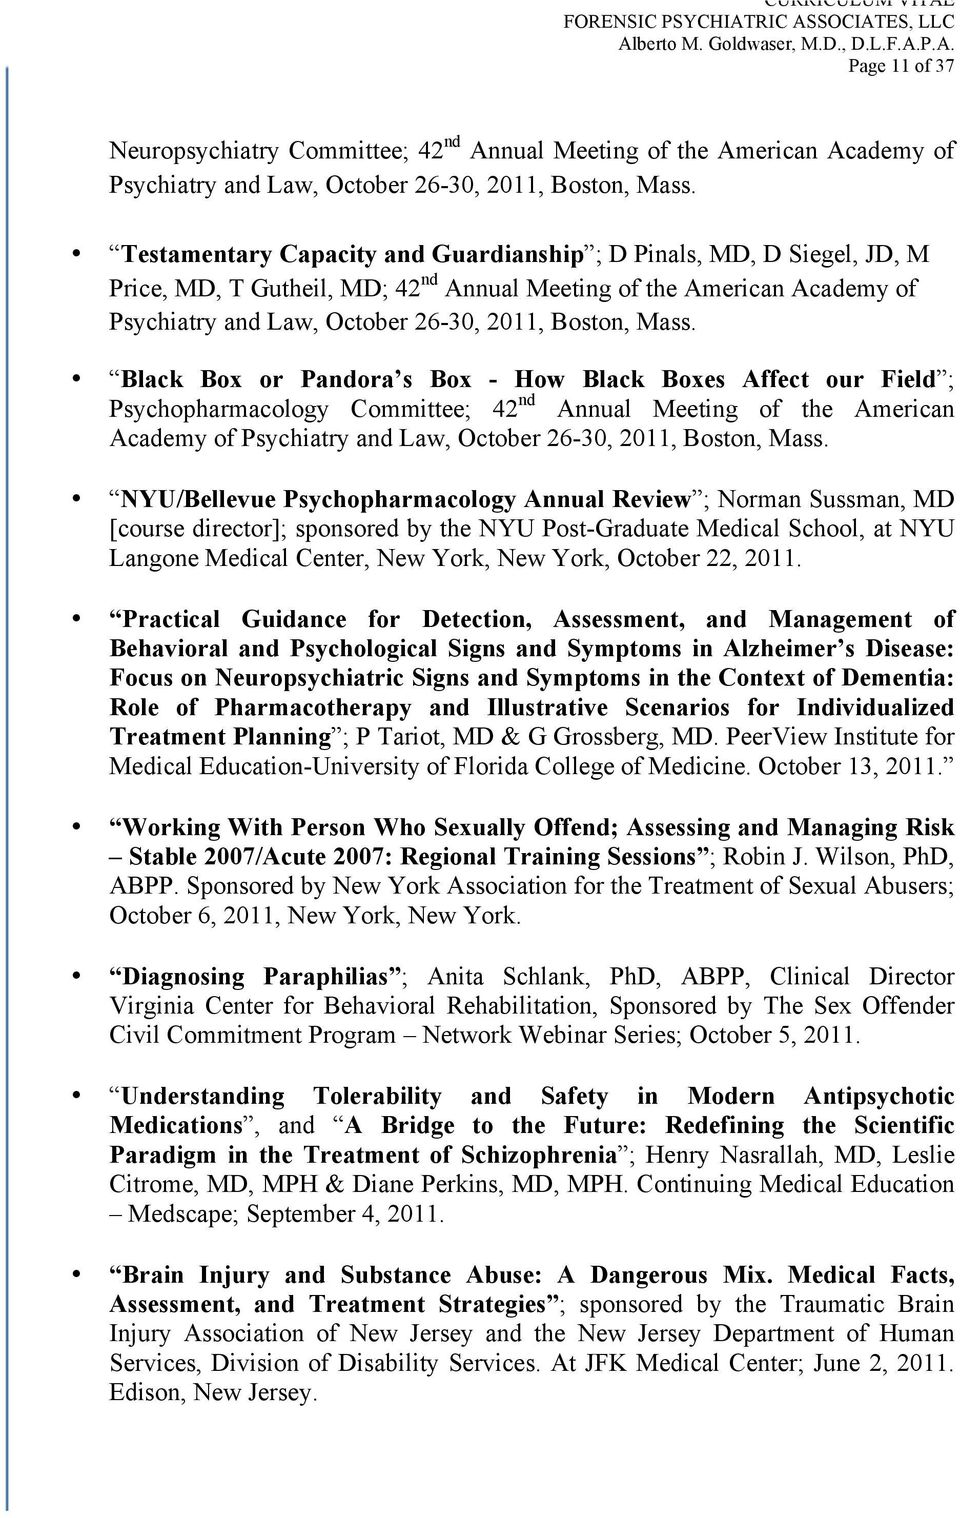 Black Box or Pandora s Box - How Black Boxes Affect our Field ; Psychopharmacology Committee; 42 nd Annual Meeting of the American Academy of Psychiatry and Law, October 26-30, 2011, Boston, Mass.